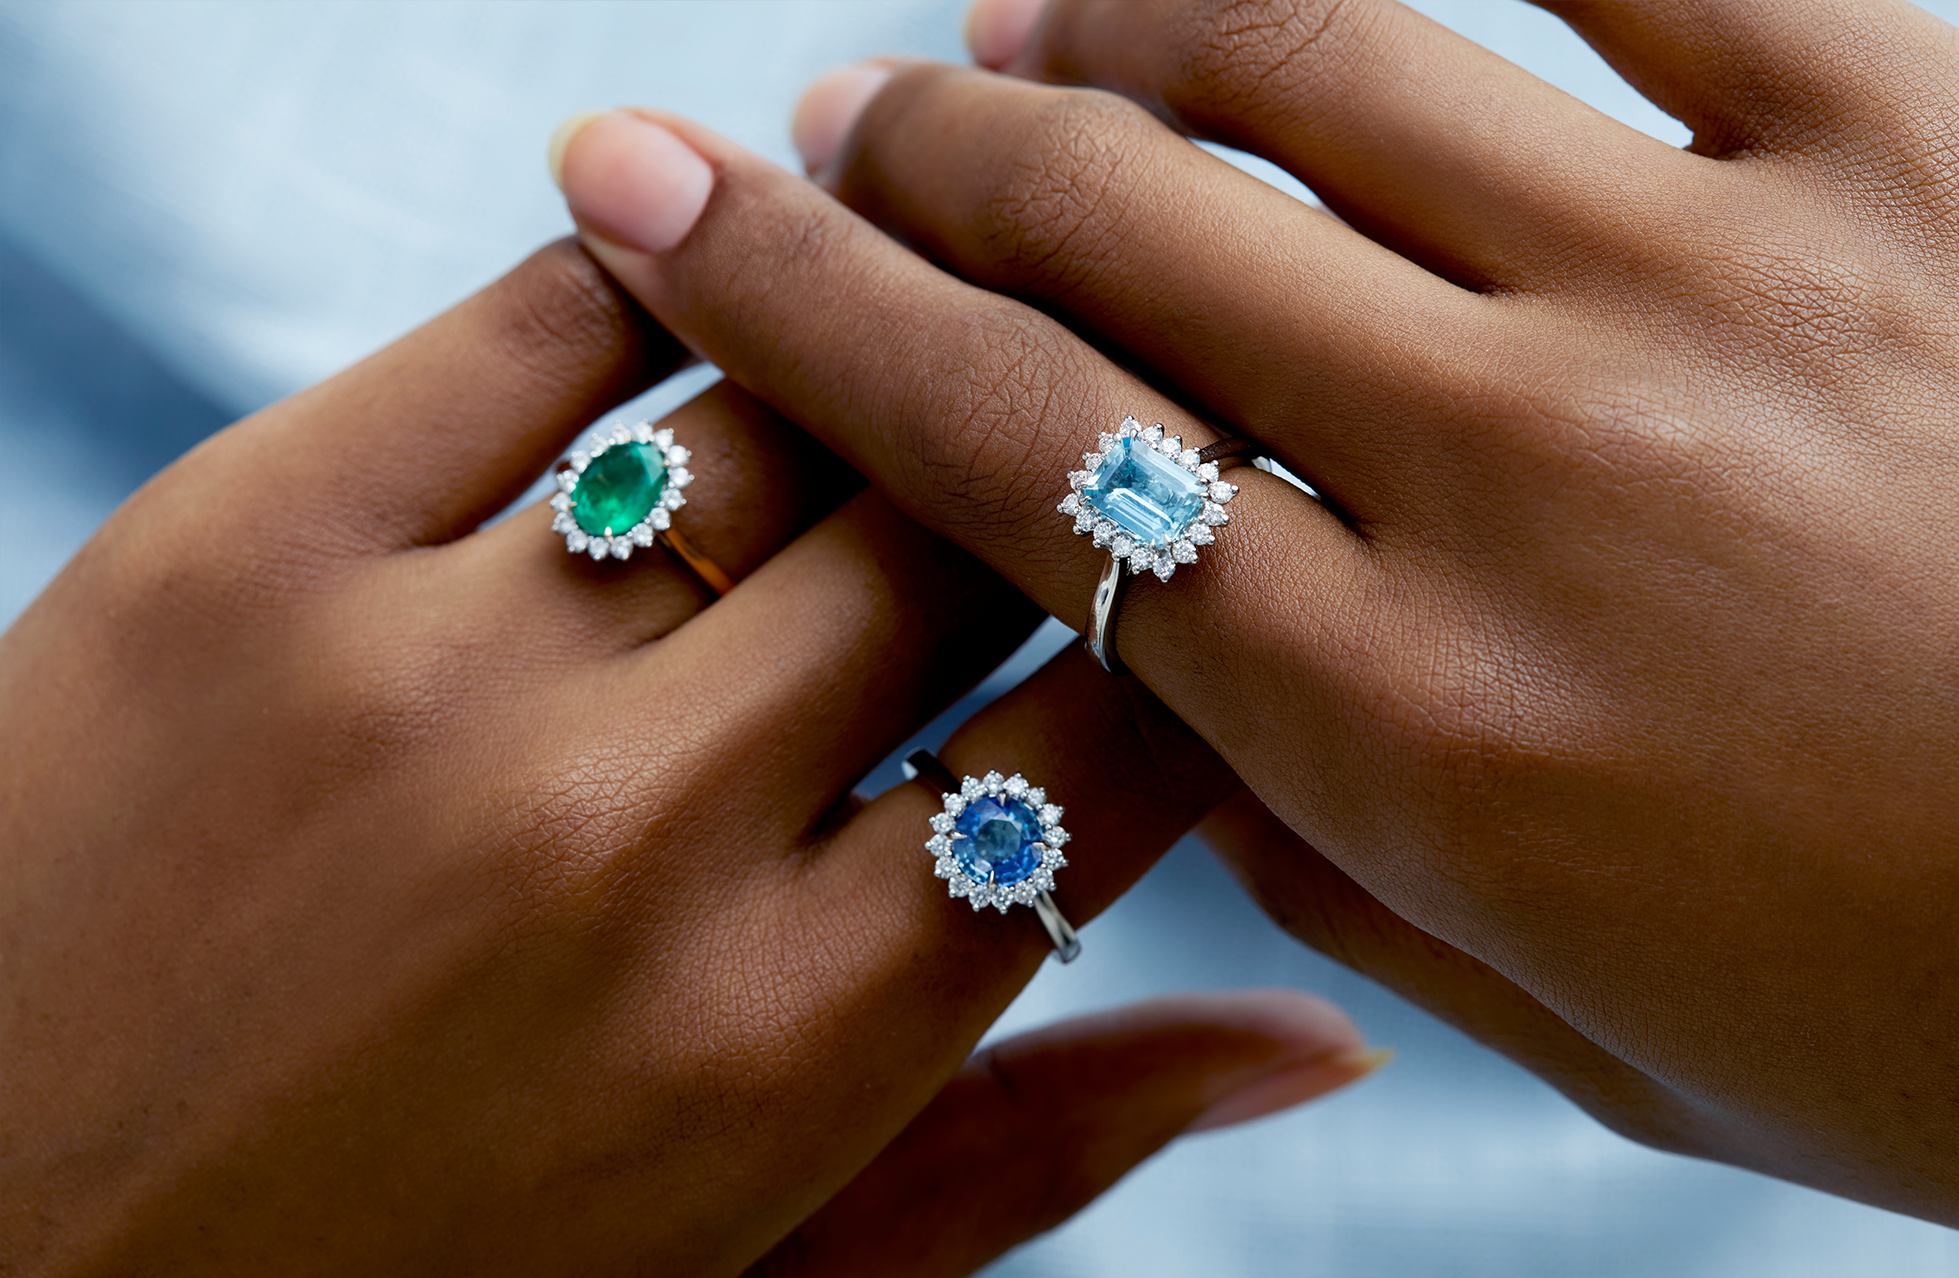 The Star Rings from Fenton - emerald, blue sapphire and aquamarine set in 18kt gold and platinum with a halo of diamonds.